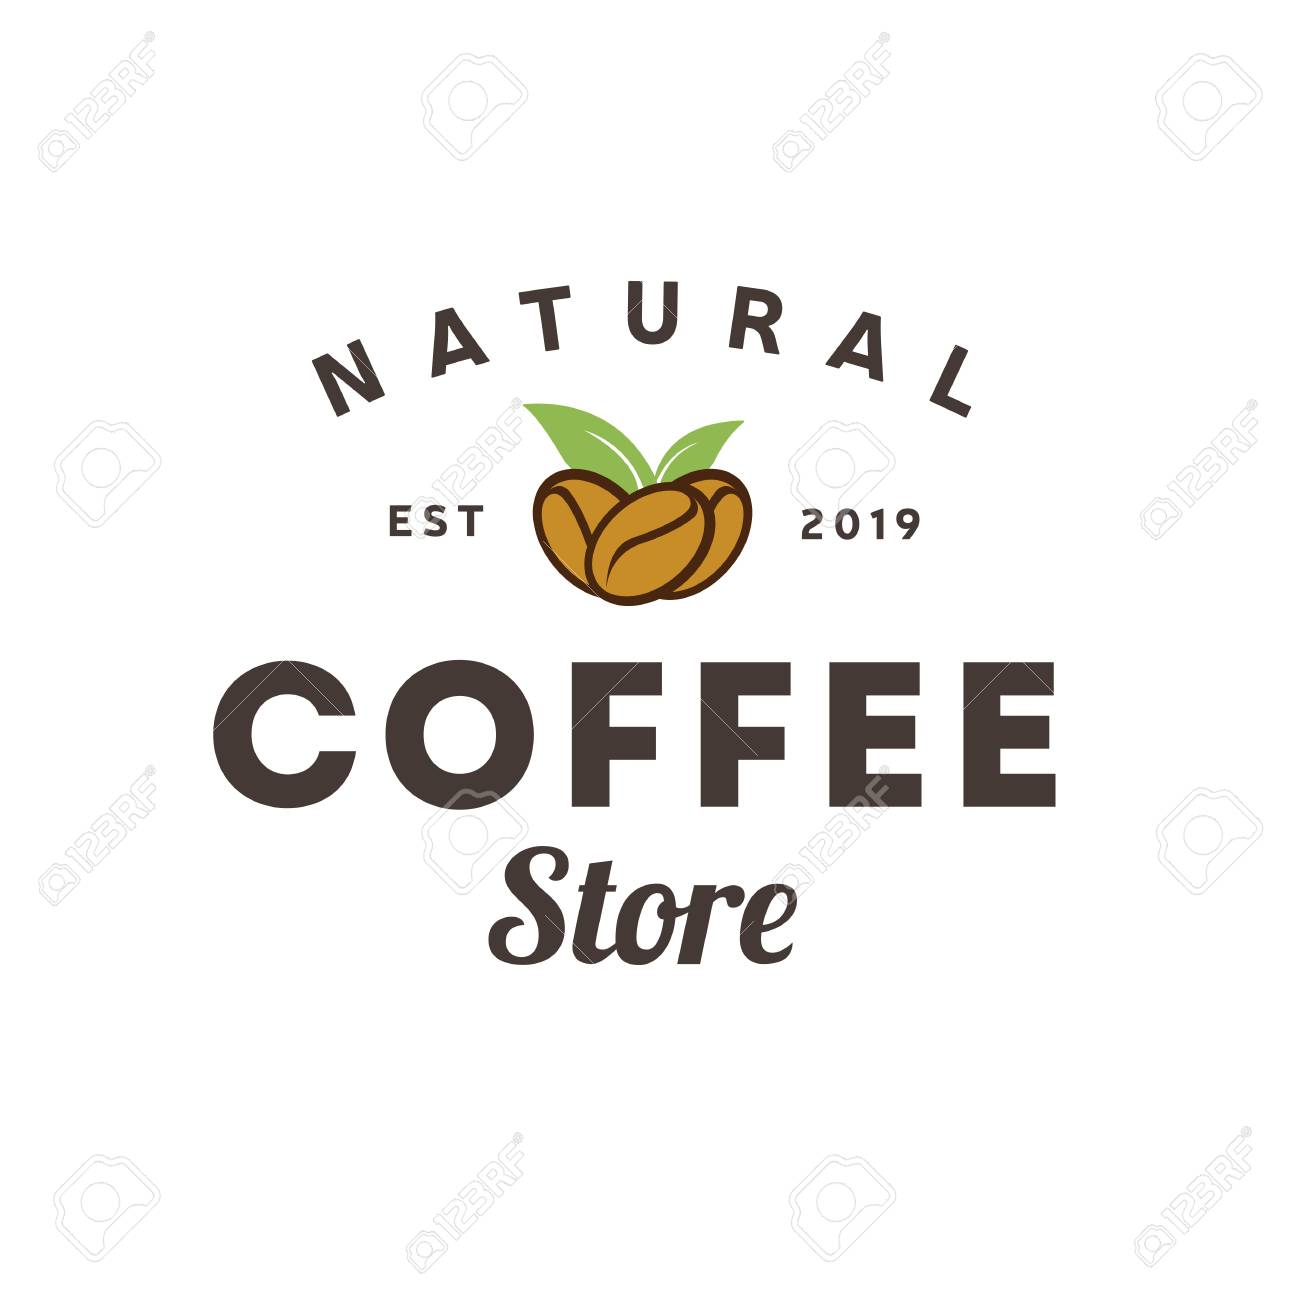 Coffee Natural Store logo vintage  Coffee shop template  Restaurant